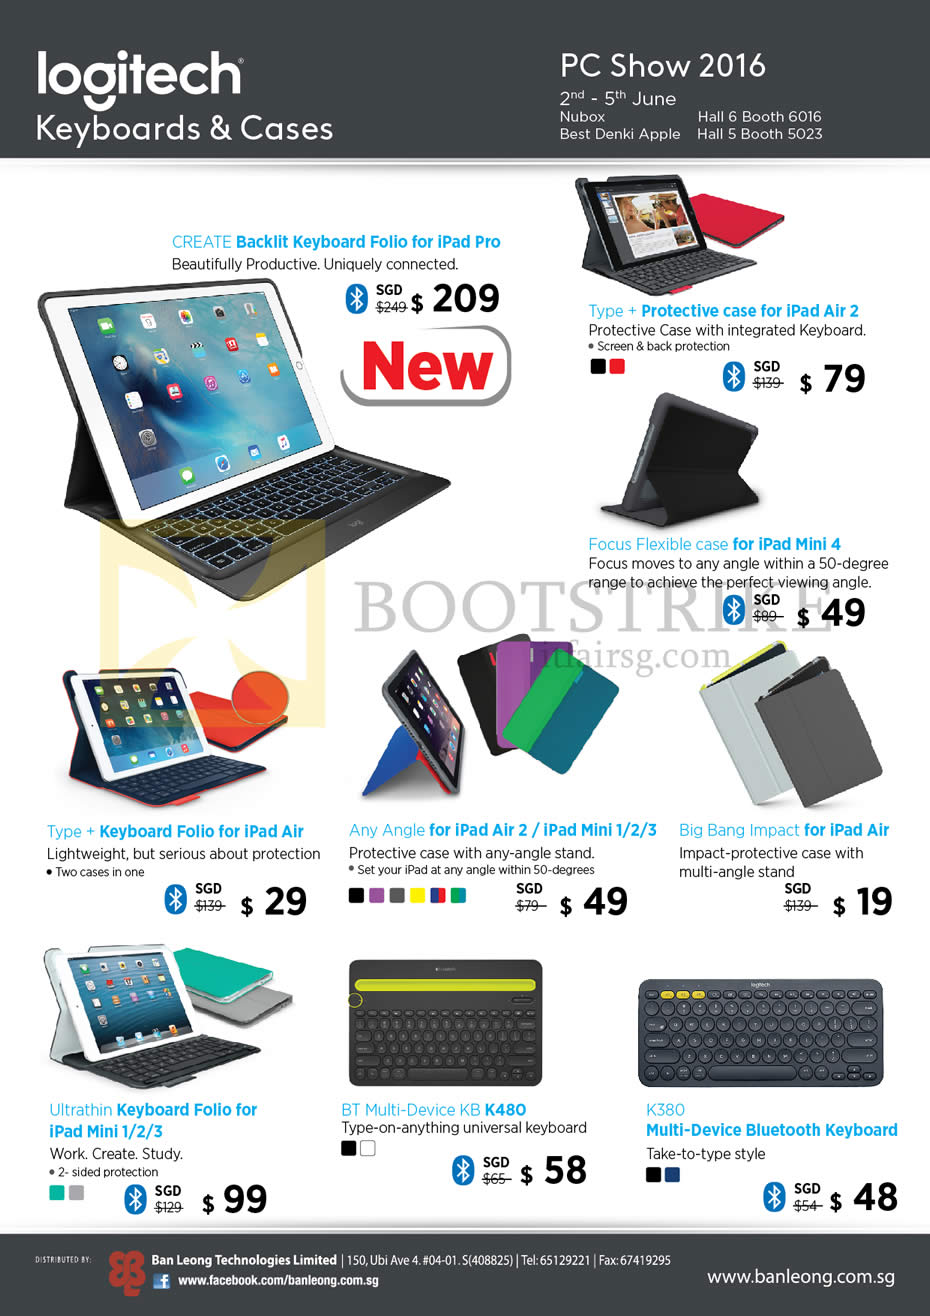 PC SHOW 2016 price list image brochure of Logitech Keyboards Cases, IPad Pro, IPad Mini, Folio, Keyboards K480 K380